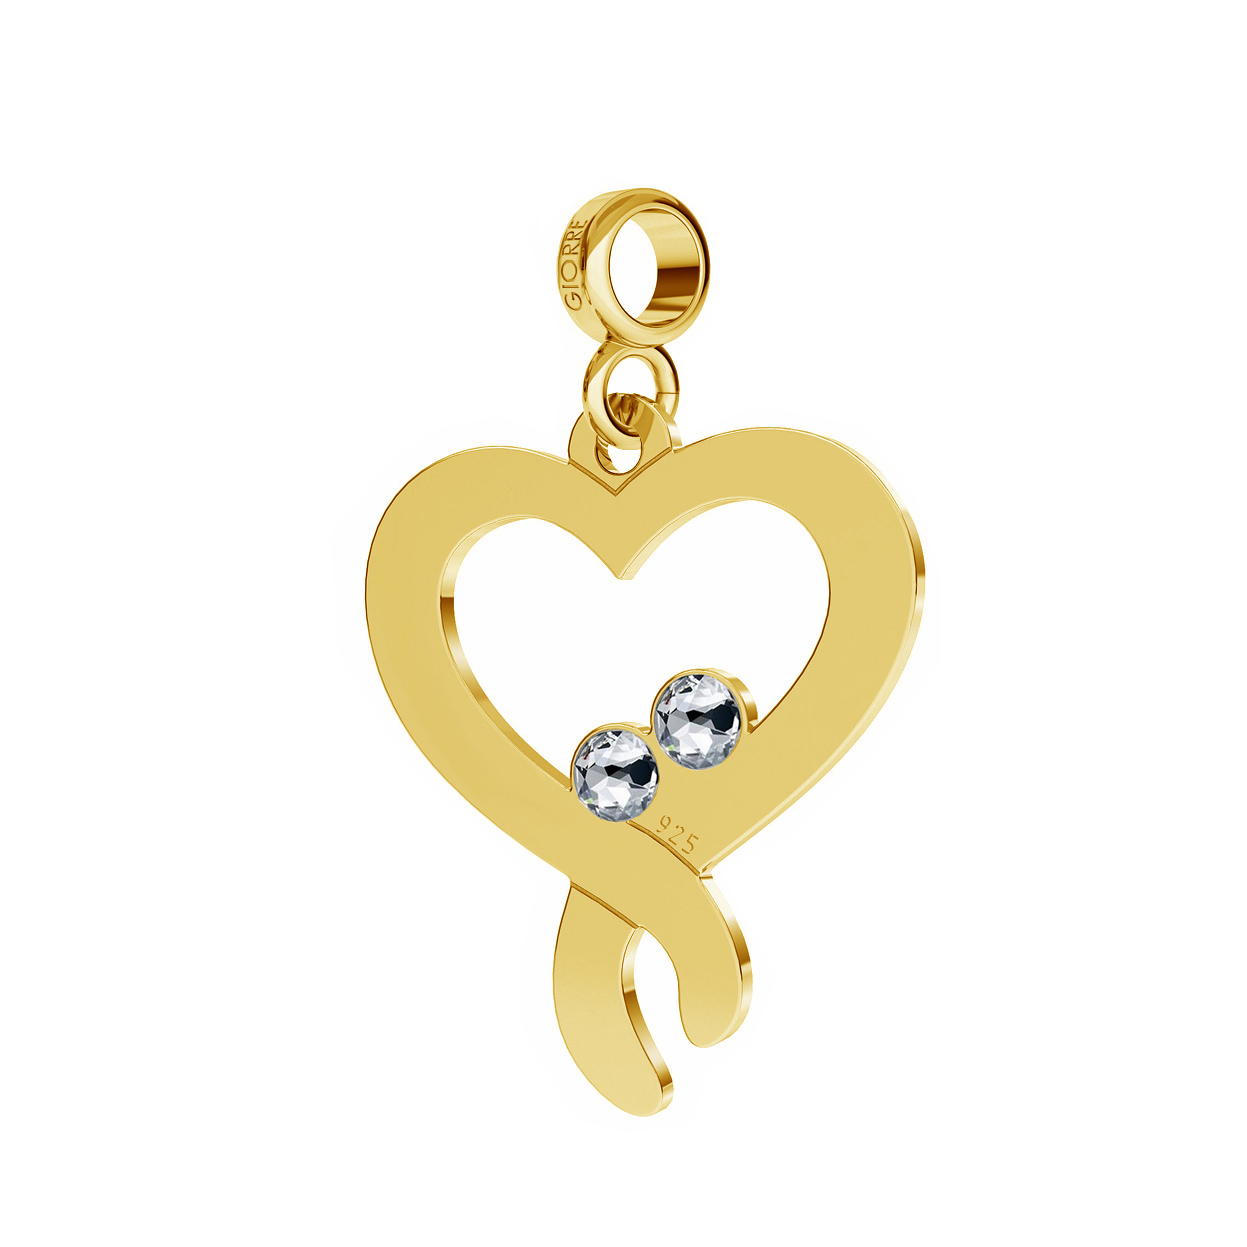 DOUBLE HEART WITH SWAROVSKI CHARMS BEADS PENDANT STERLING SILVER